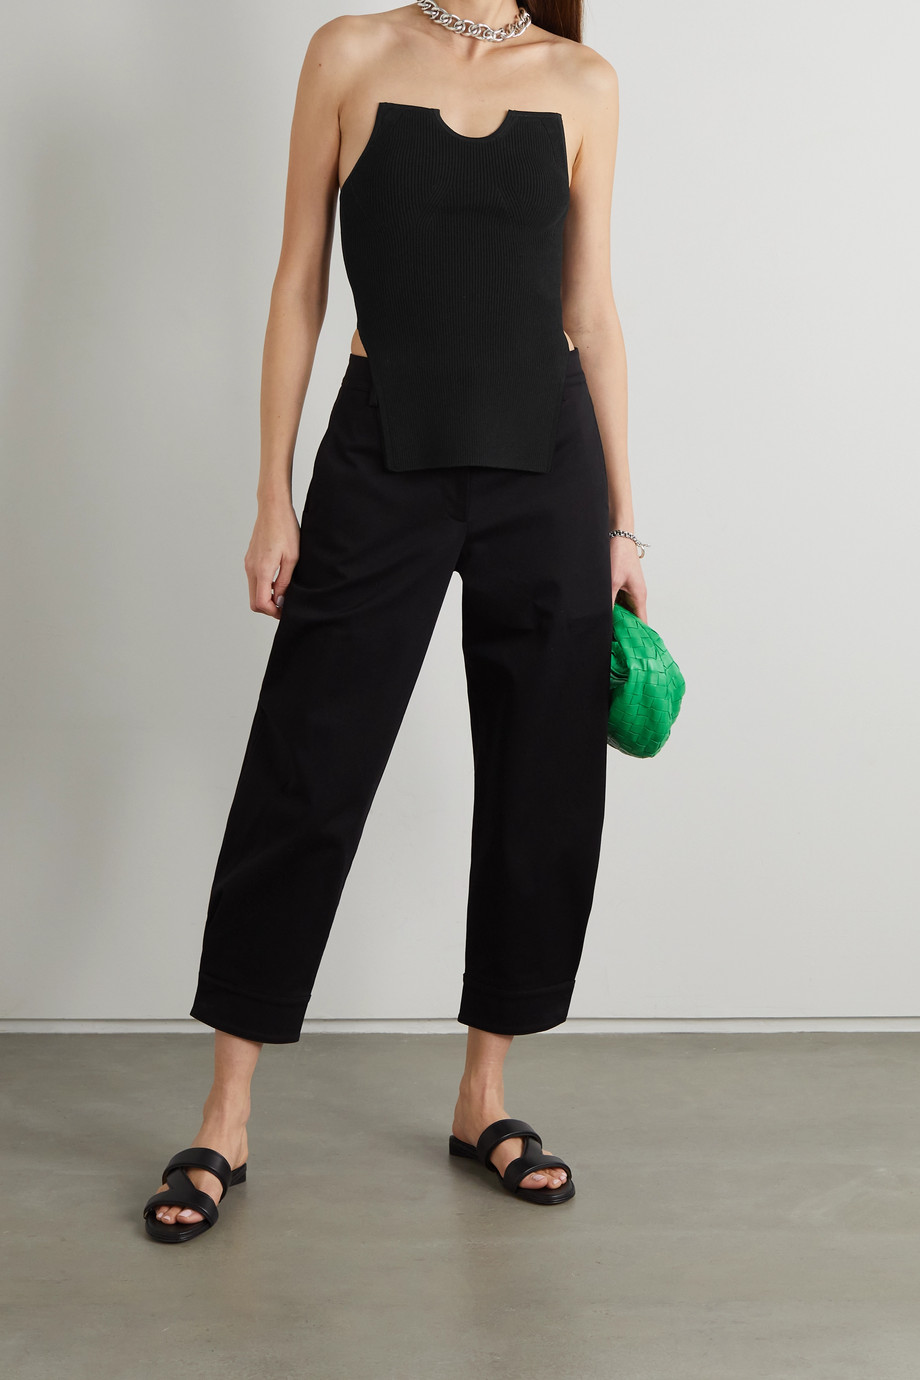 Tibi Giselle asymmetric ribbed stretch-knit bustier top